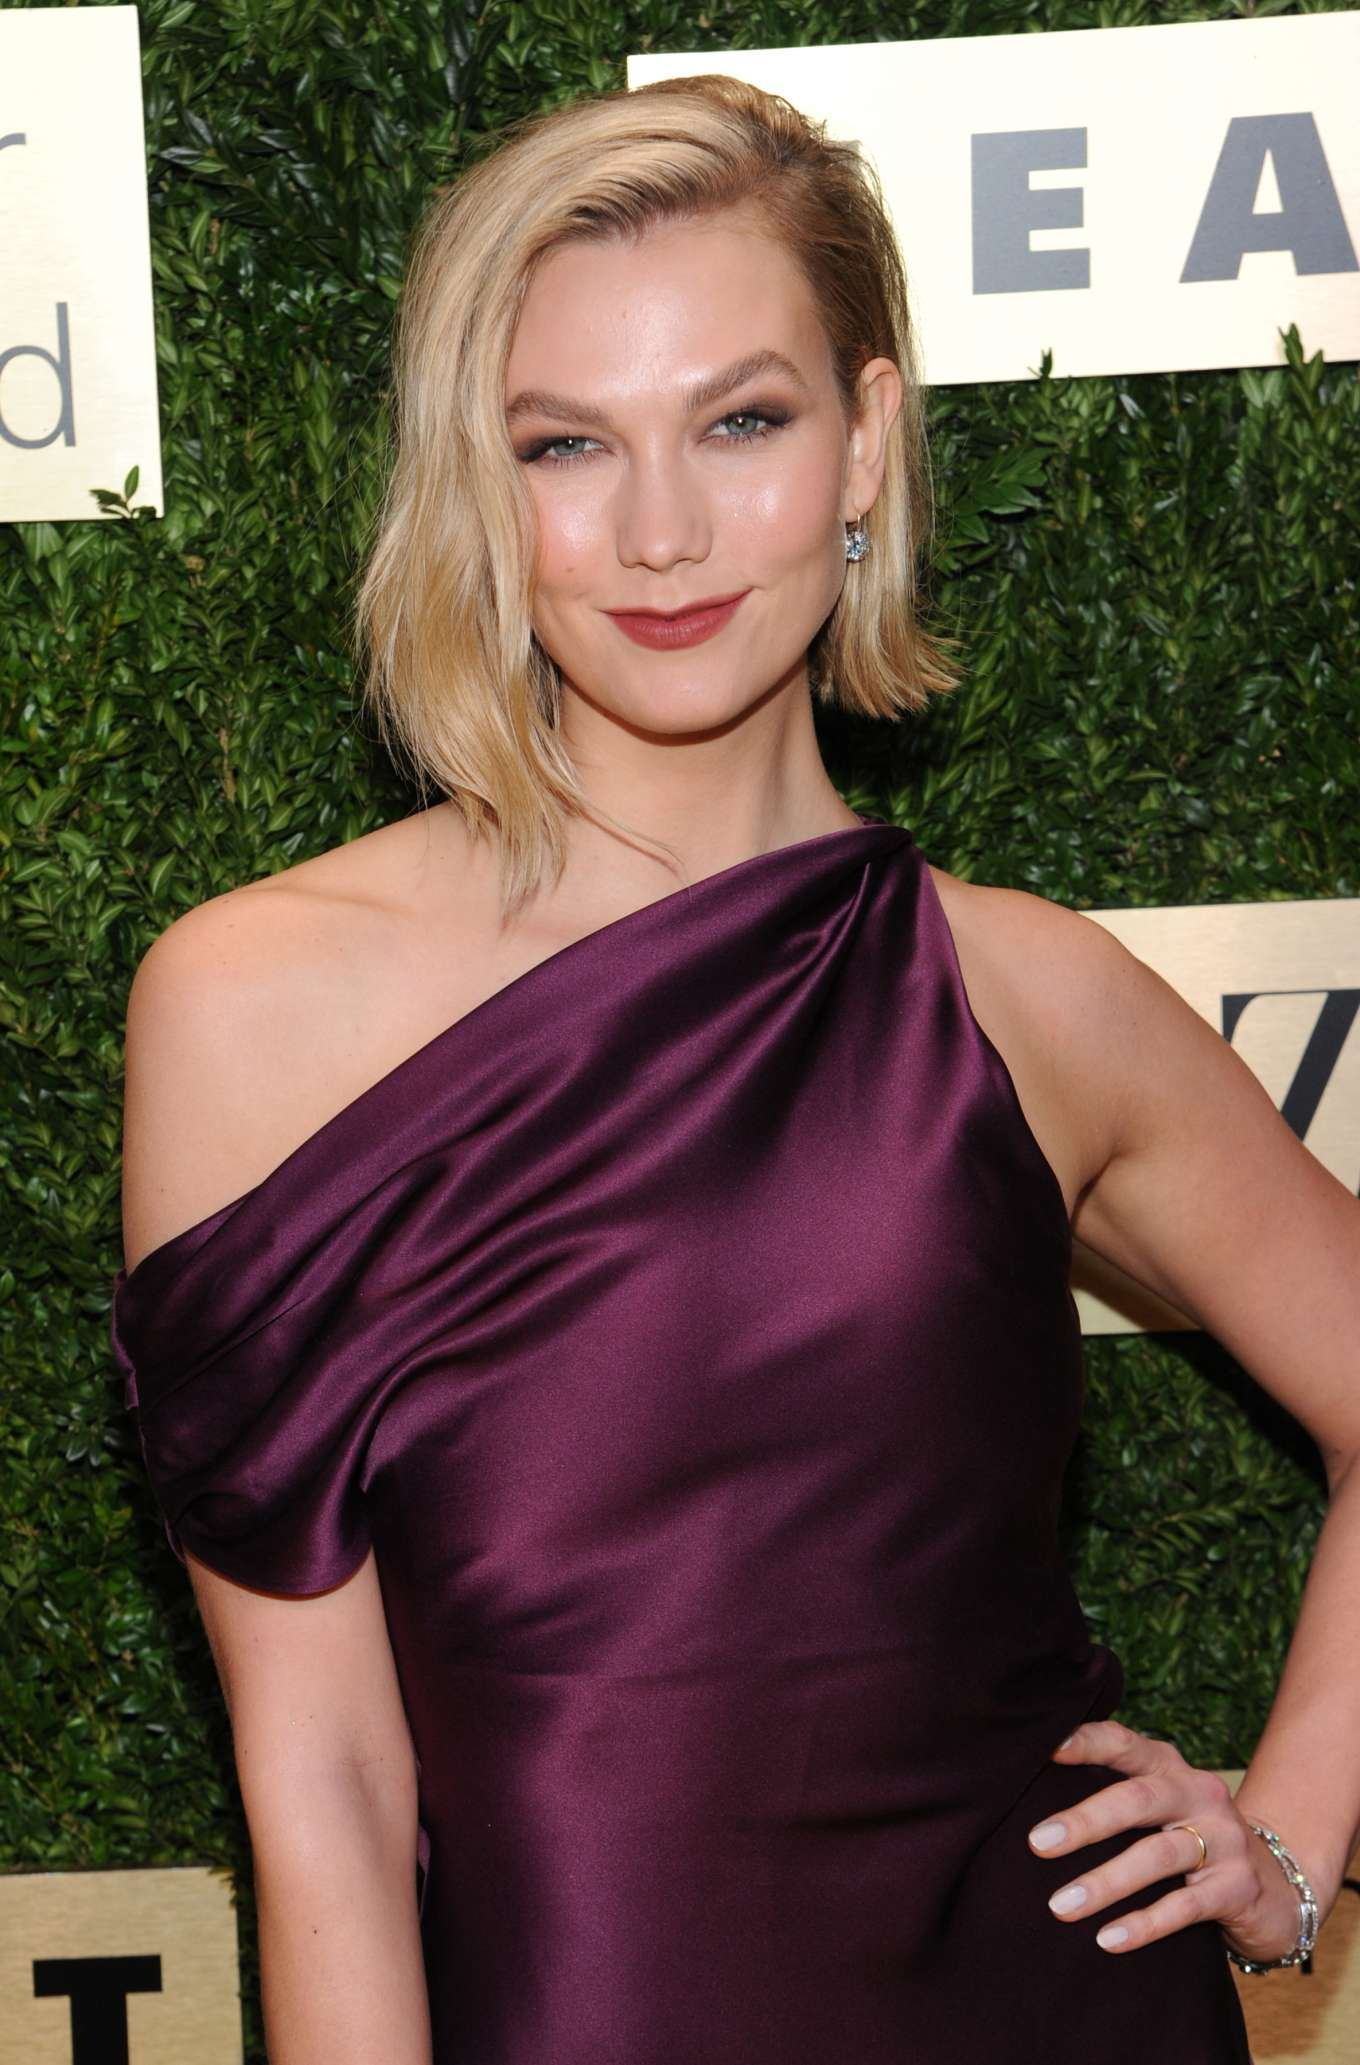 Karlie Kloss 2019 : Karlie Kloss – Attends the Lincoln Center Corporate Fashion Fund Gala-07